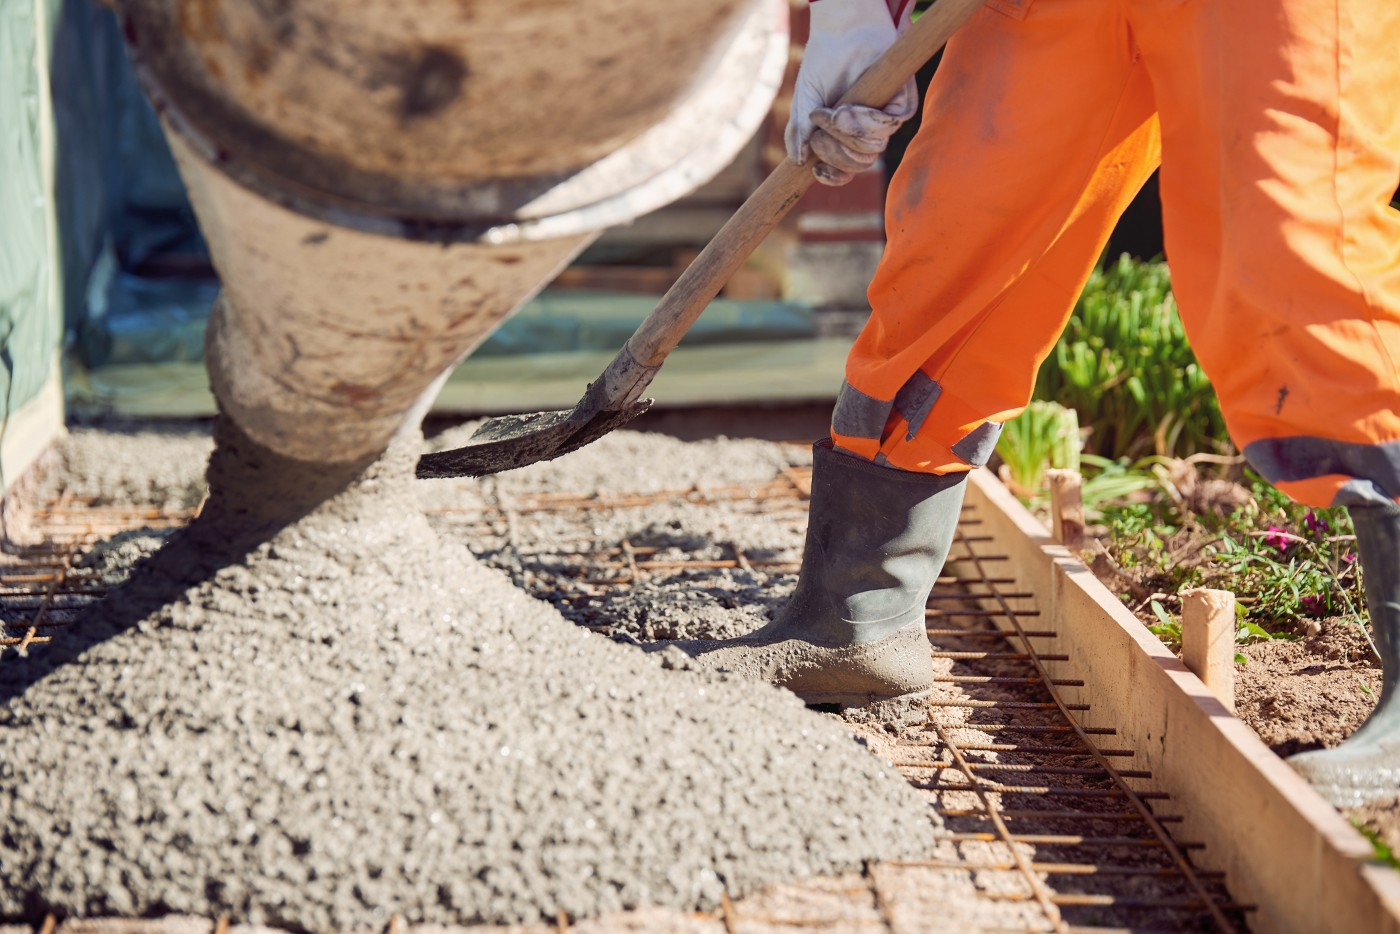 https://tickertapecdn.tdameritrade.com/assets/images/pages/md/Person pouring concrete: Home builders earnings